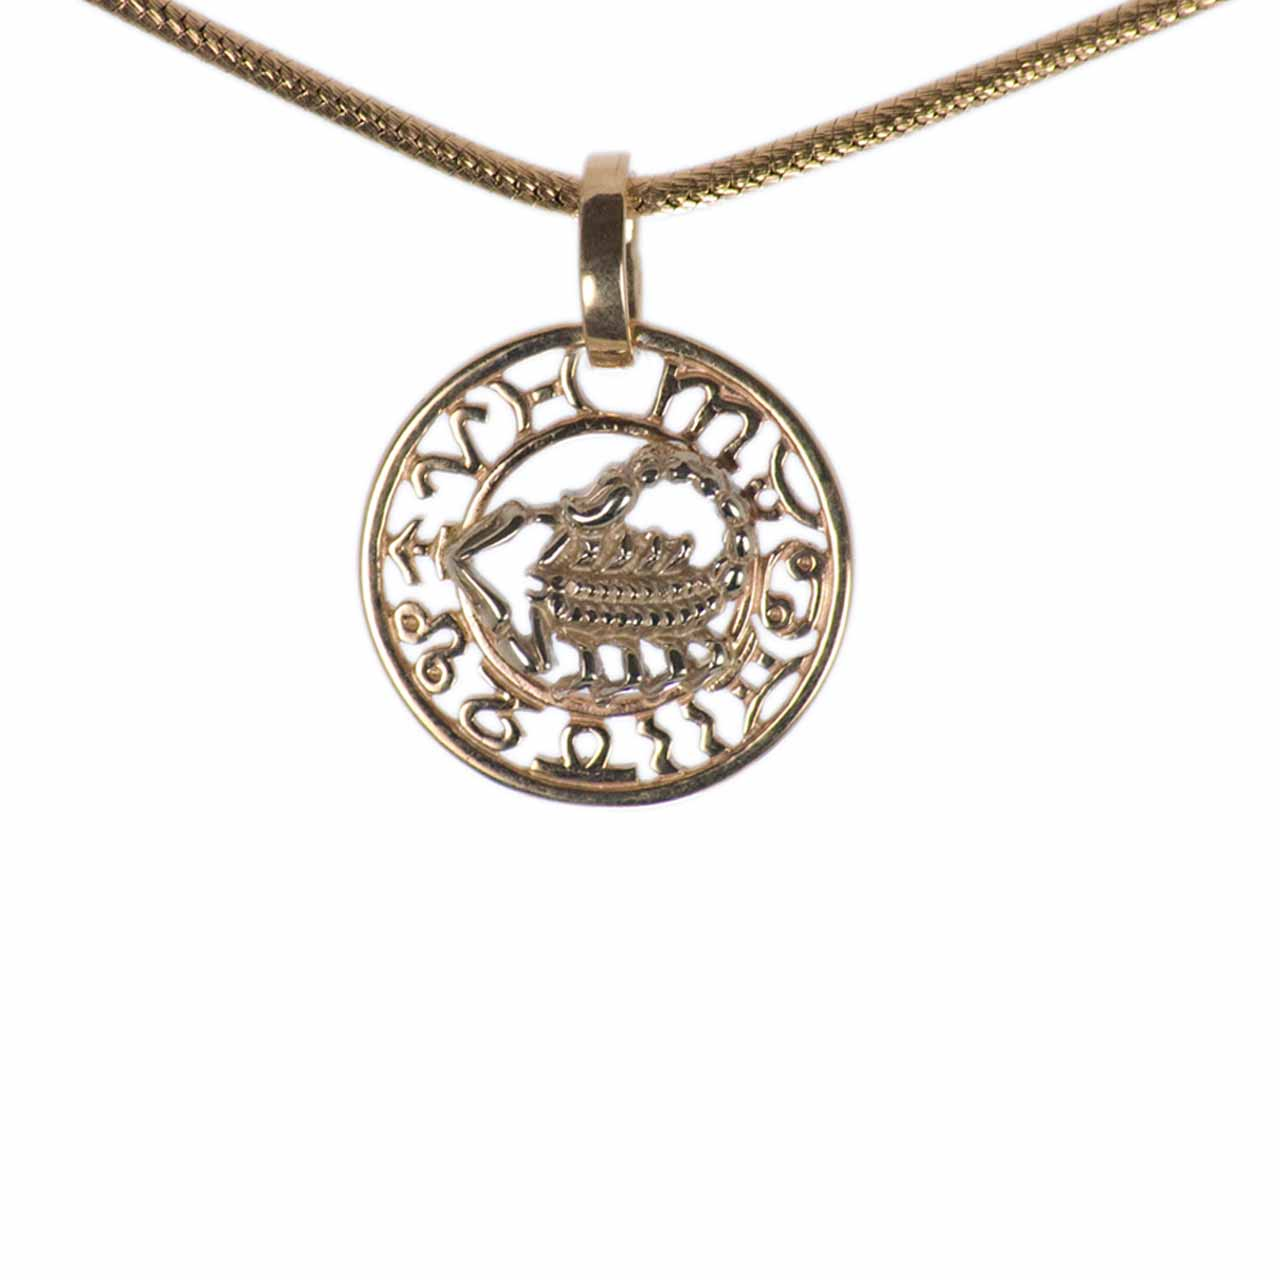 Scorpio Zodiac Filigree Astral Decor Pendant